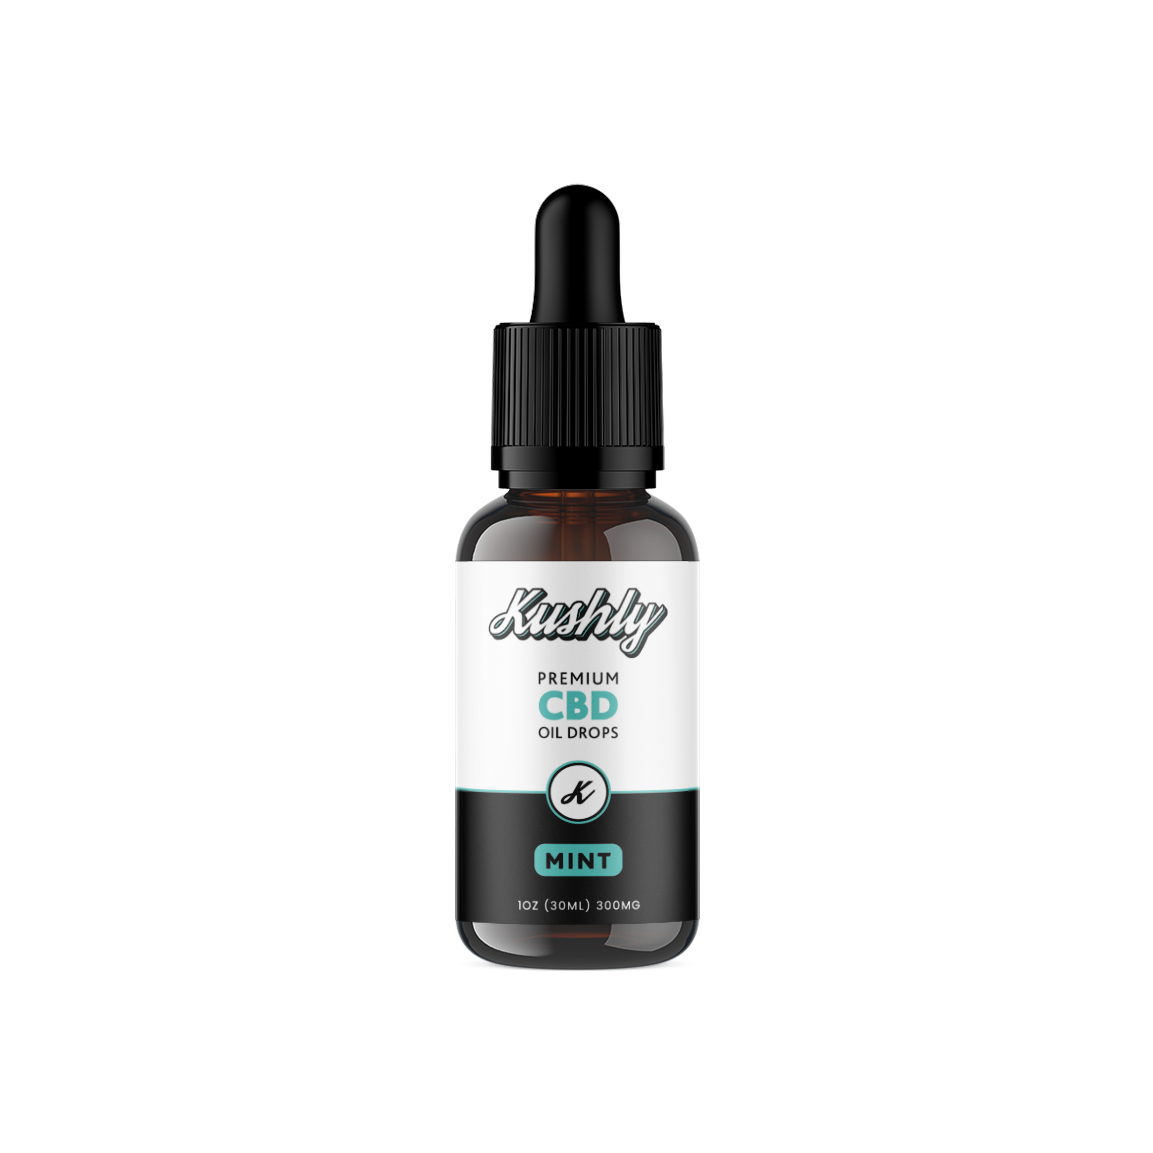 Kushly CBD Oil, Mint